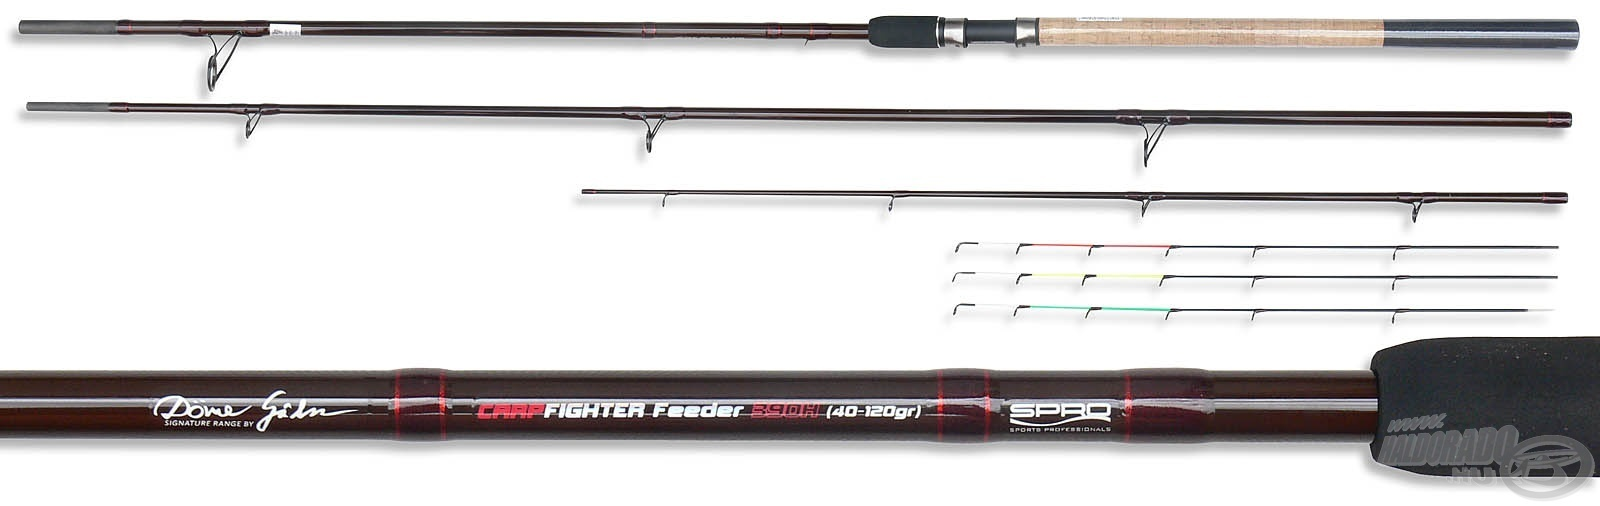 SPRO Team Feeder Carp Fighter 360XH - by D�me G�bor 17990Ft